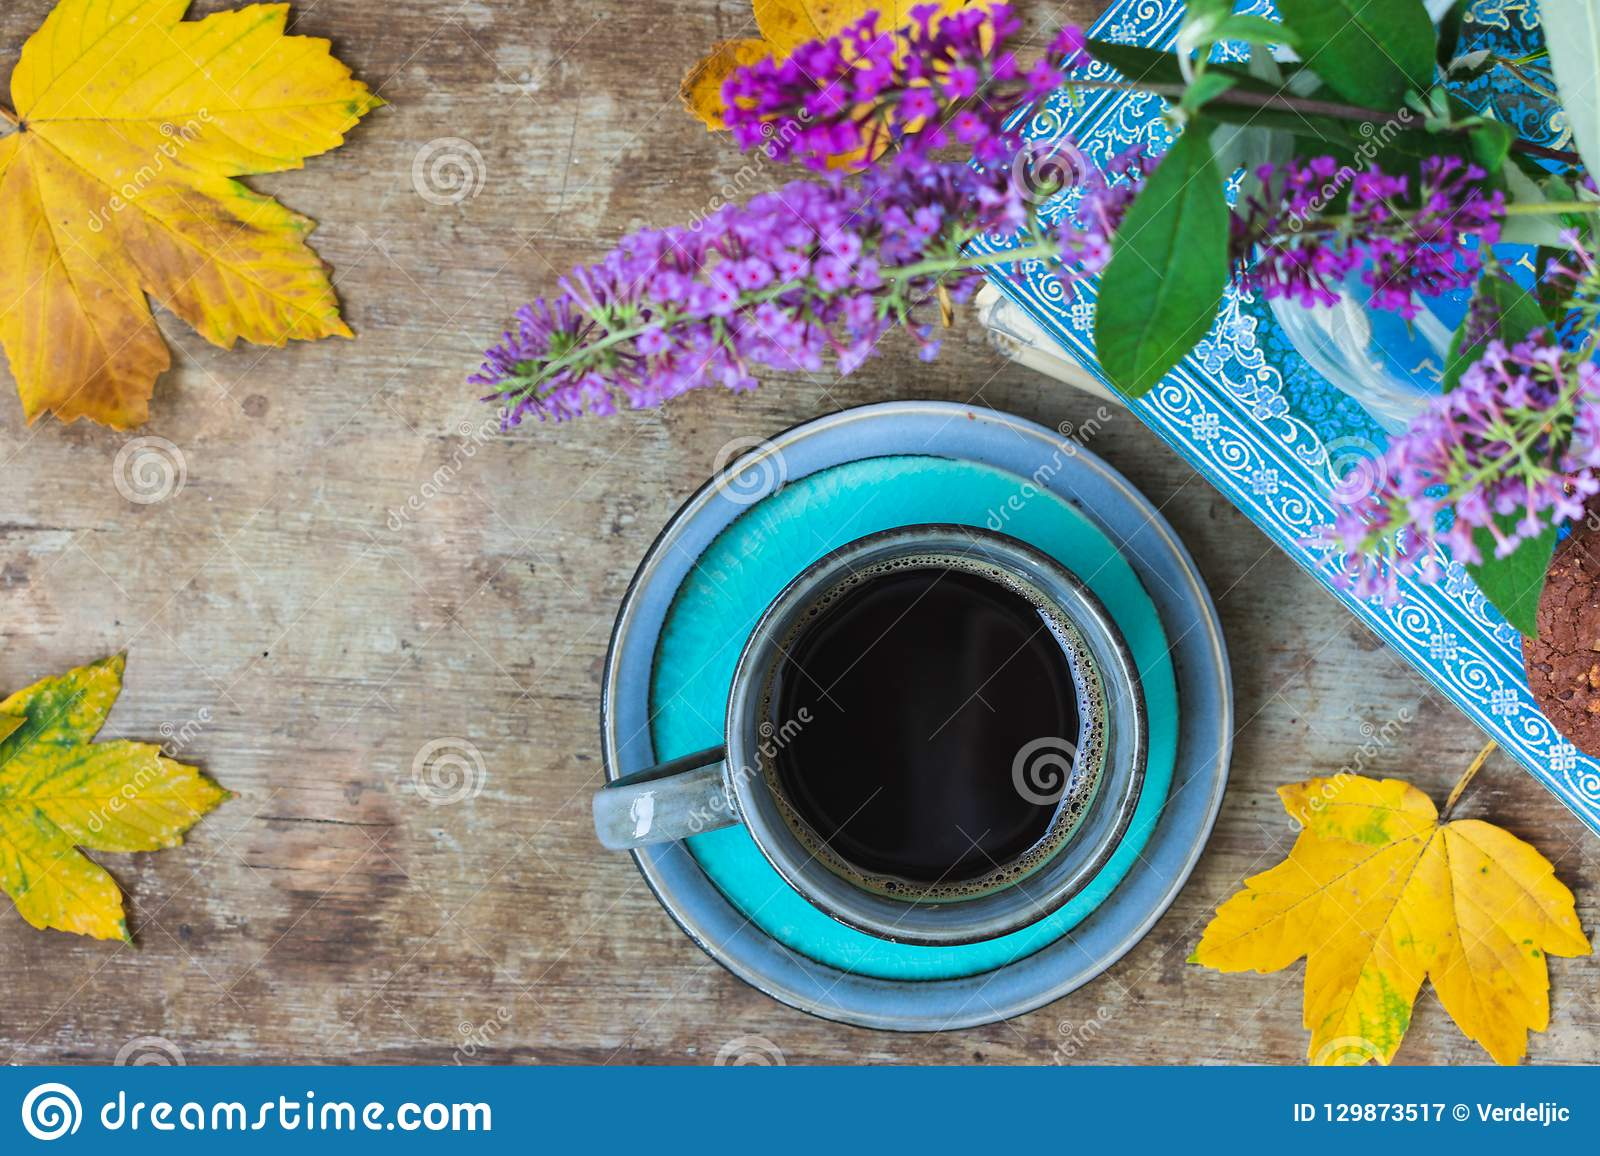 Top view of a blue cup of coffee, book, cookies, purple flowers in a vase and golden leaves on wooden background